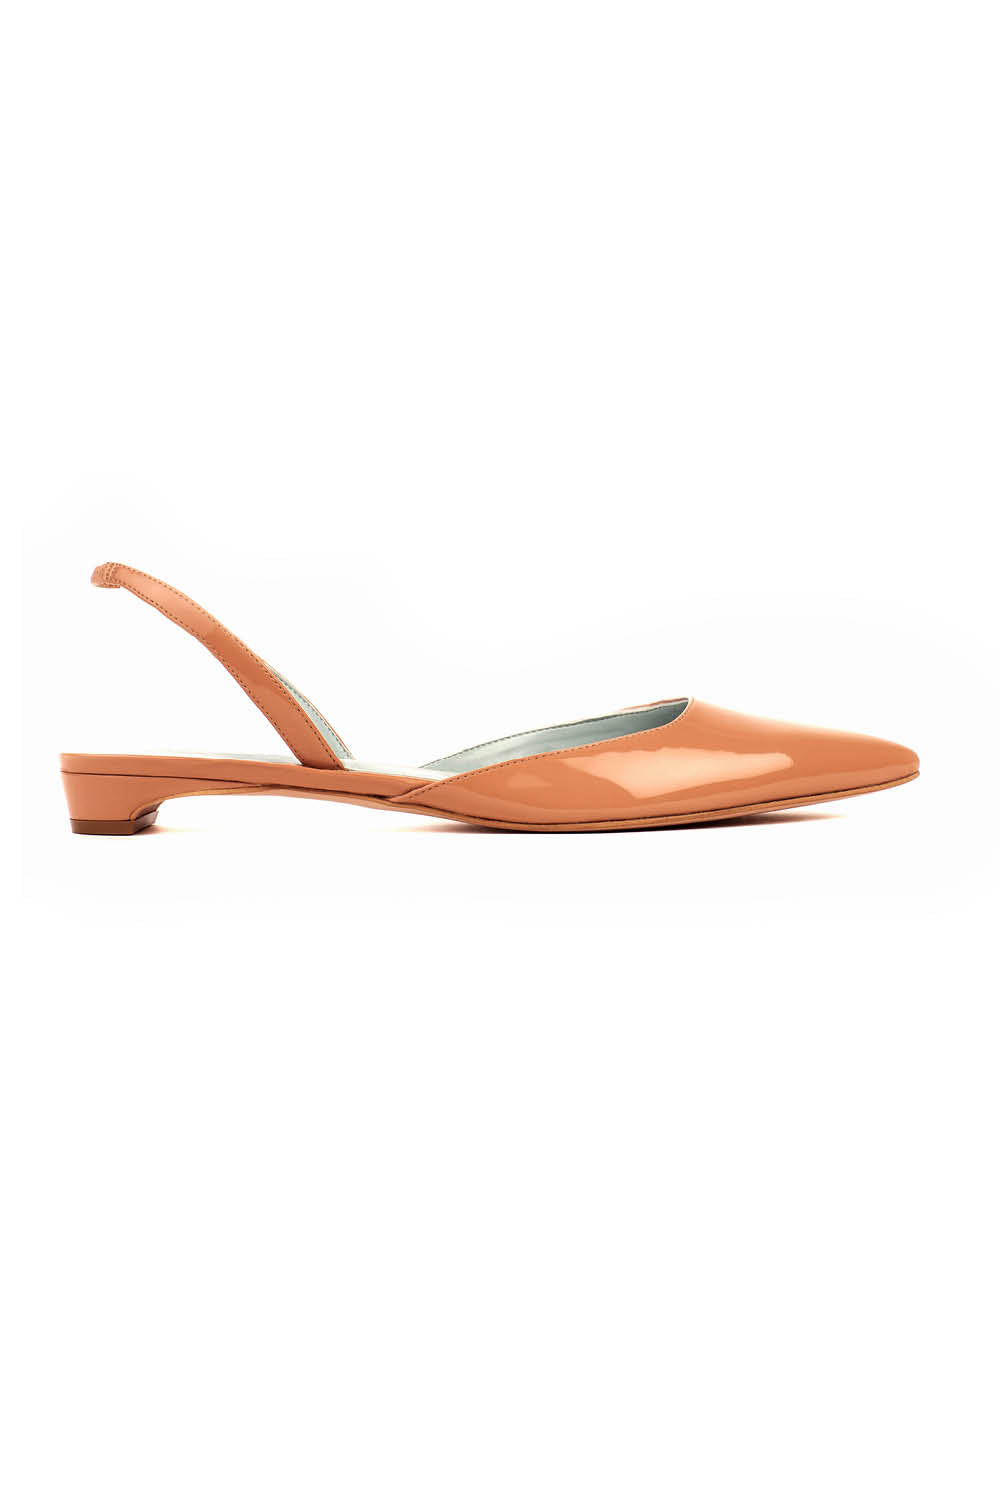 Audrey in Nude Patent Effect